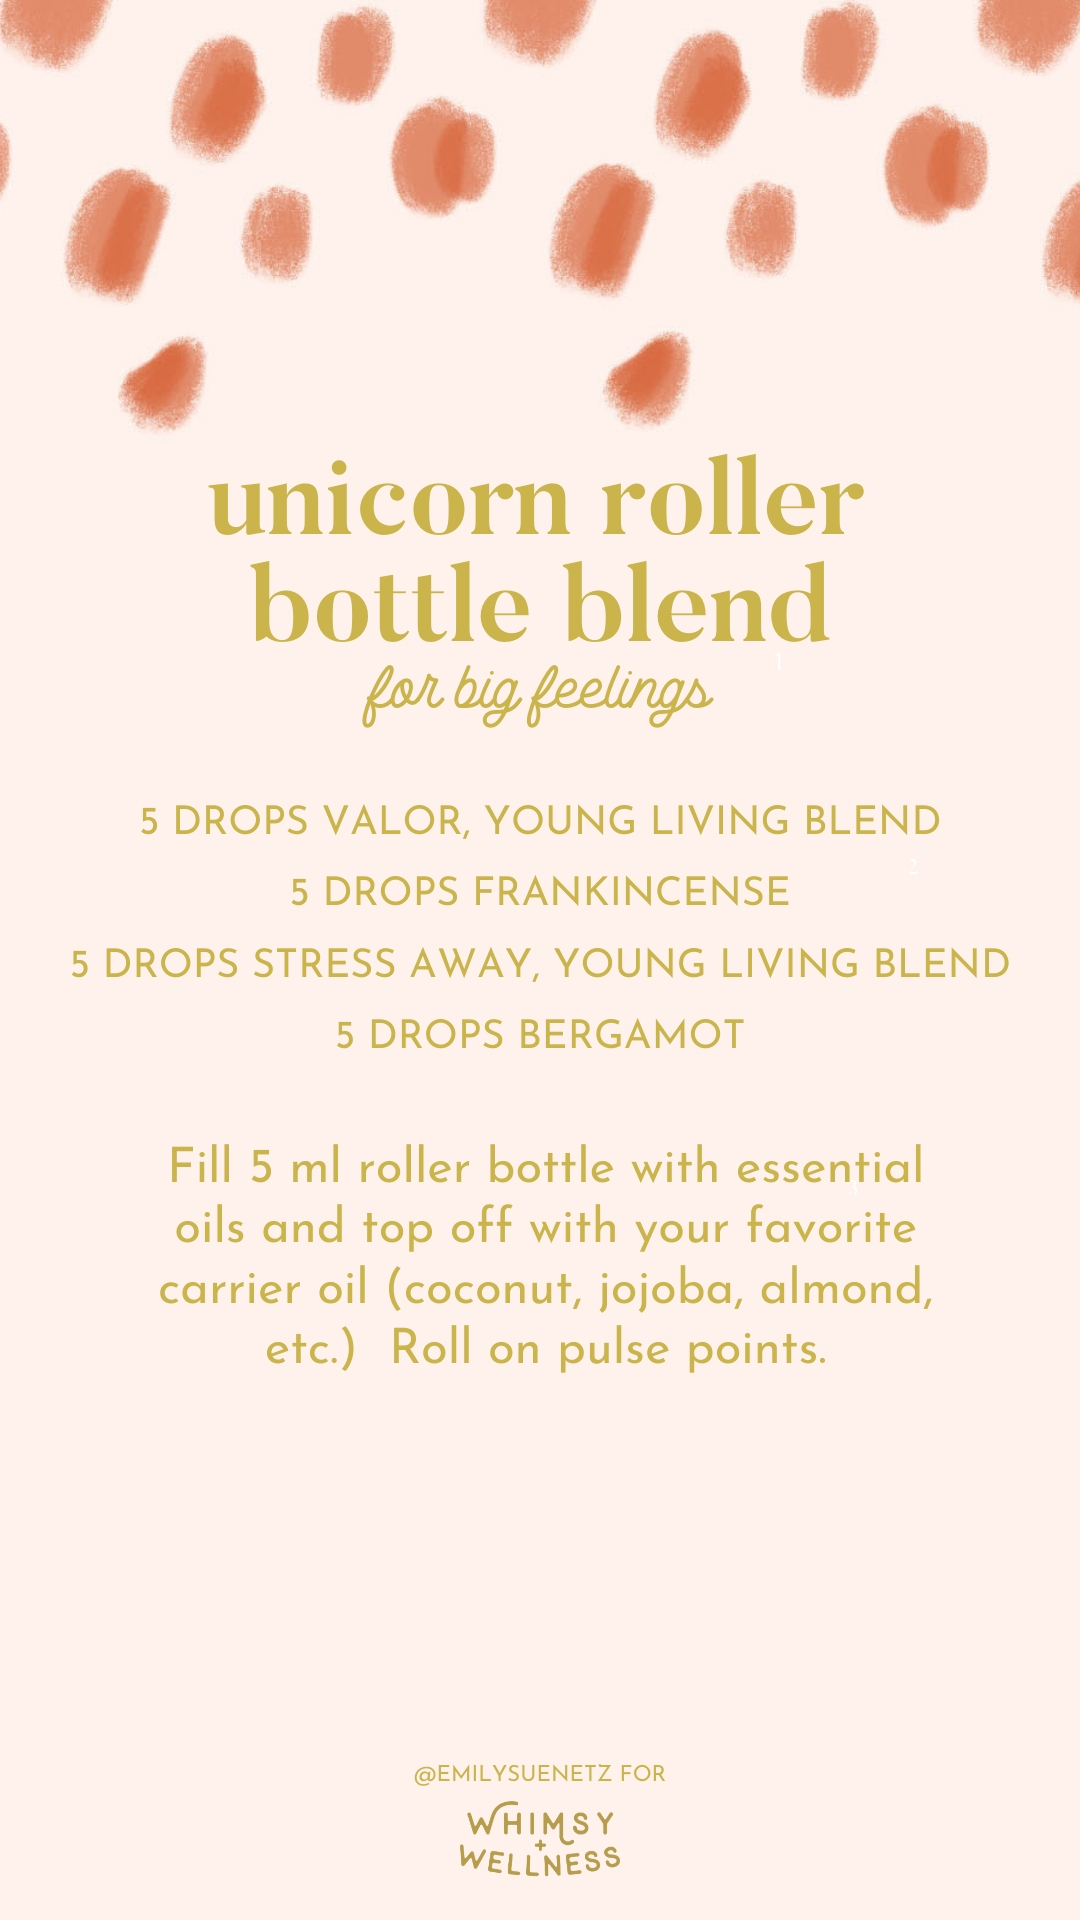 unicorn roller bottle blend for big feelings with young living essential oils Emily Sue Netz for Whimsy and Wellness